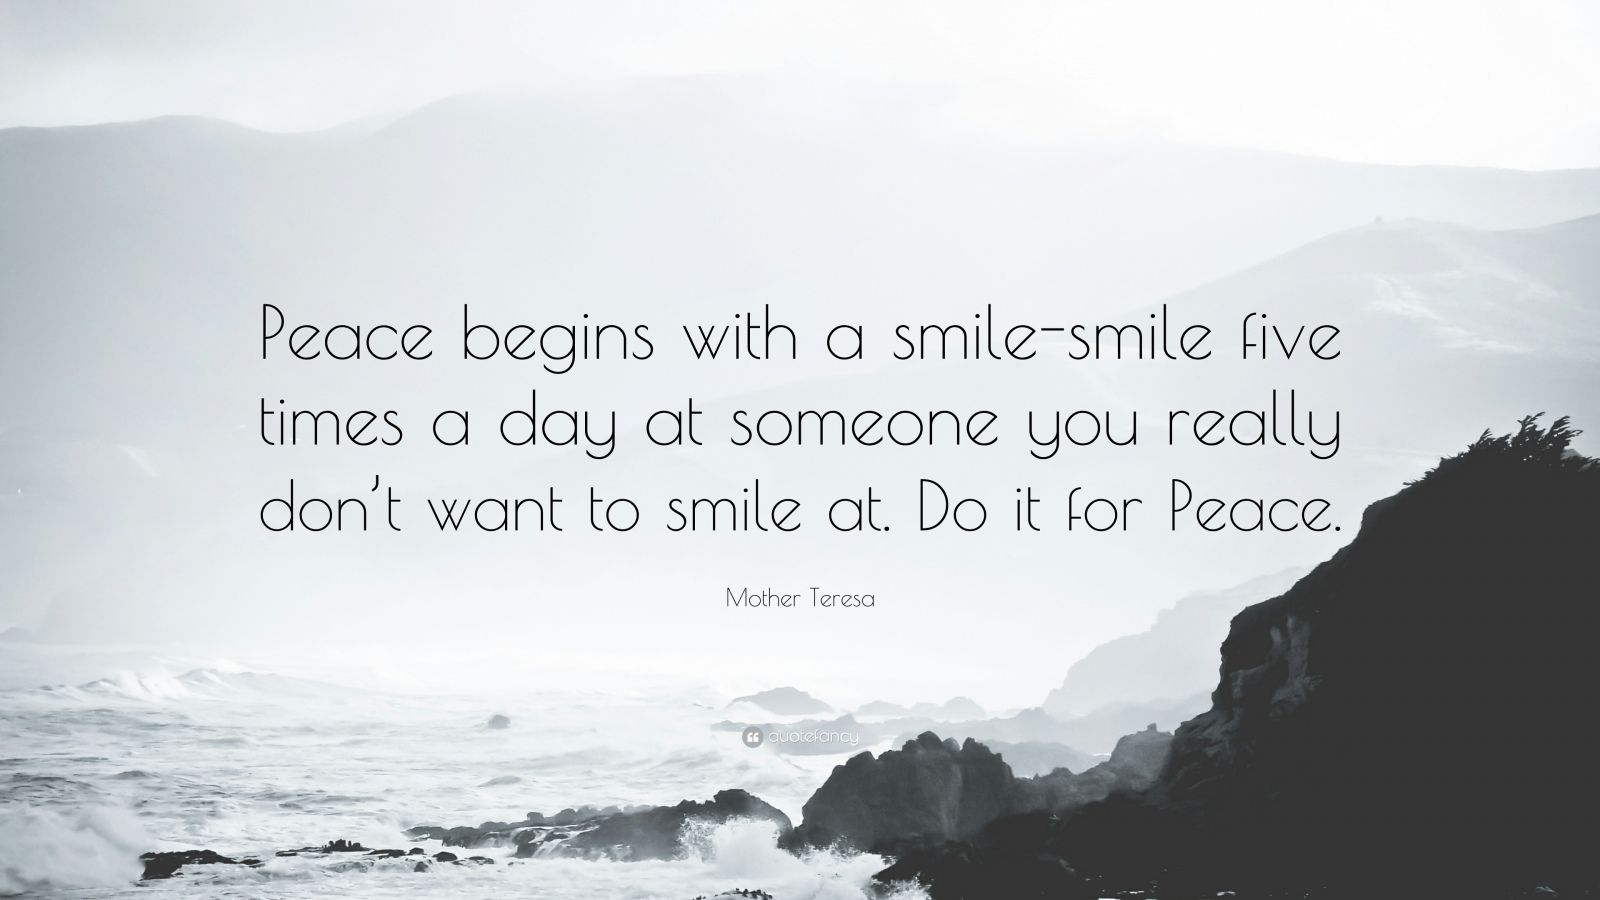 """Mother Teresa Quote: """"Peace begins with a smile-smile five times a day at someone you really don't want to smile at. Do it for Peace."""""""